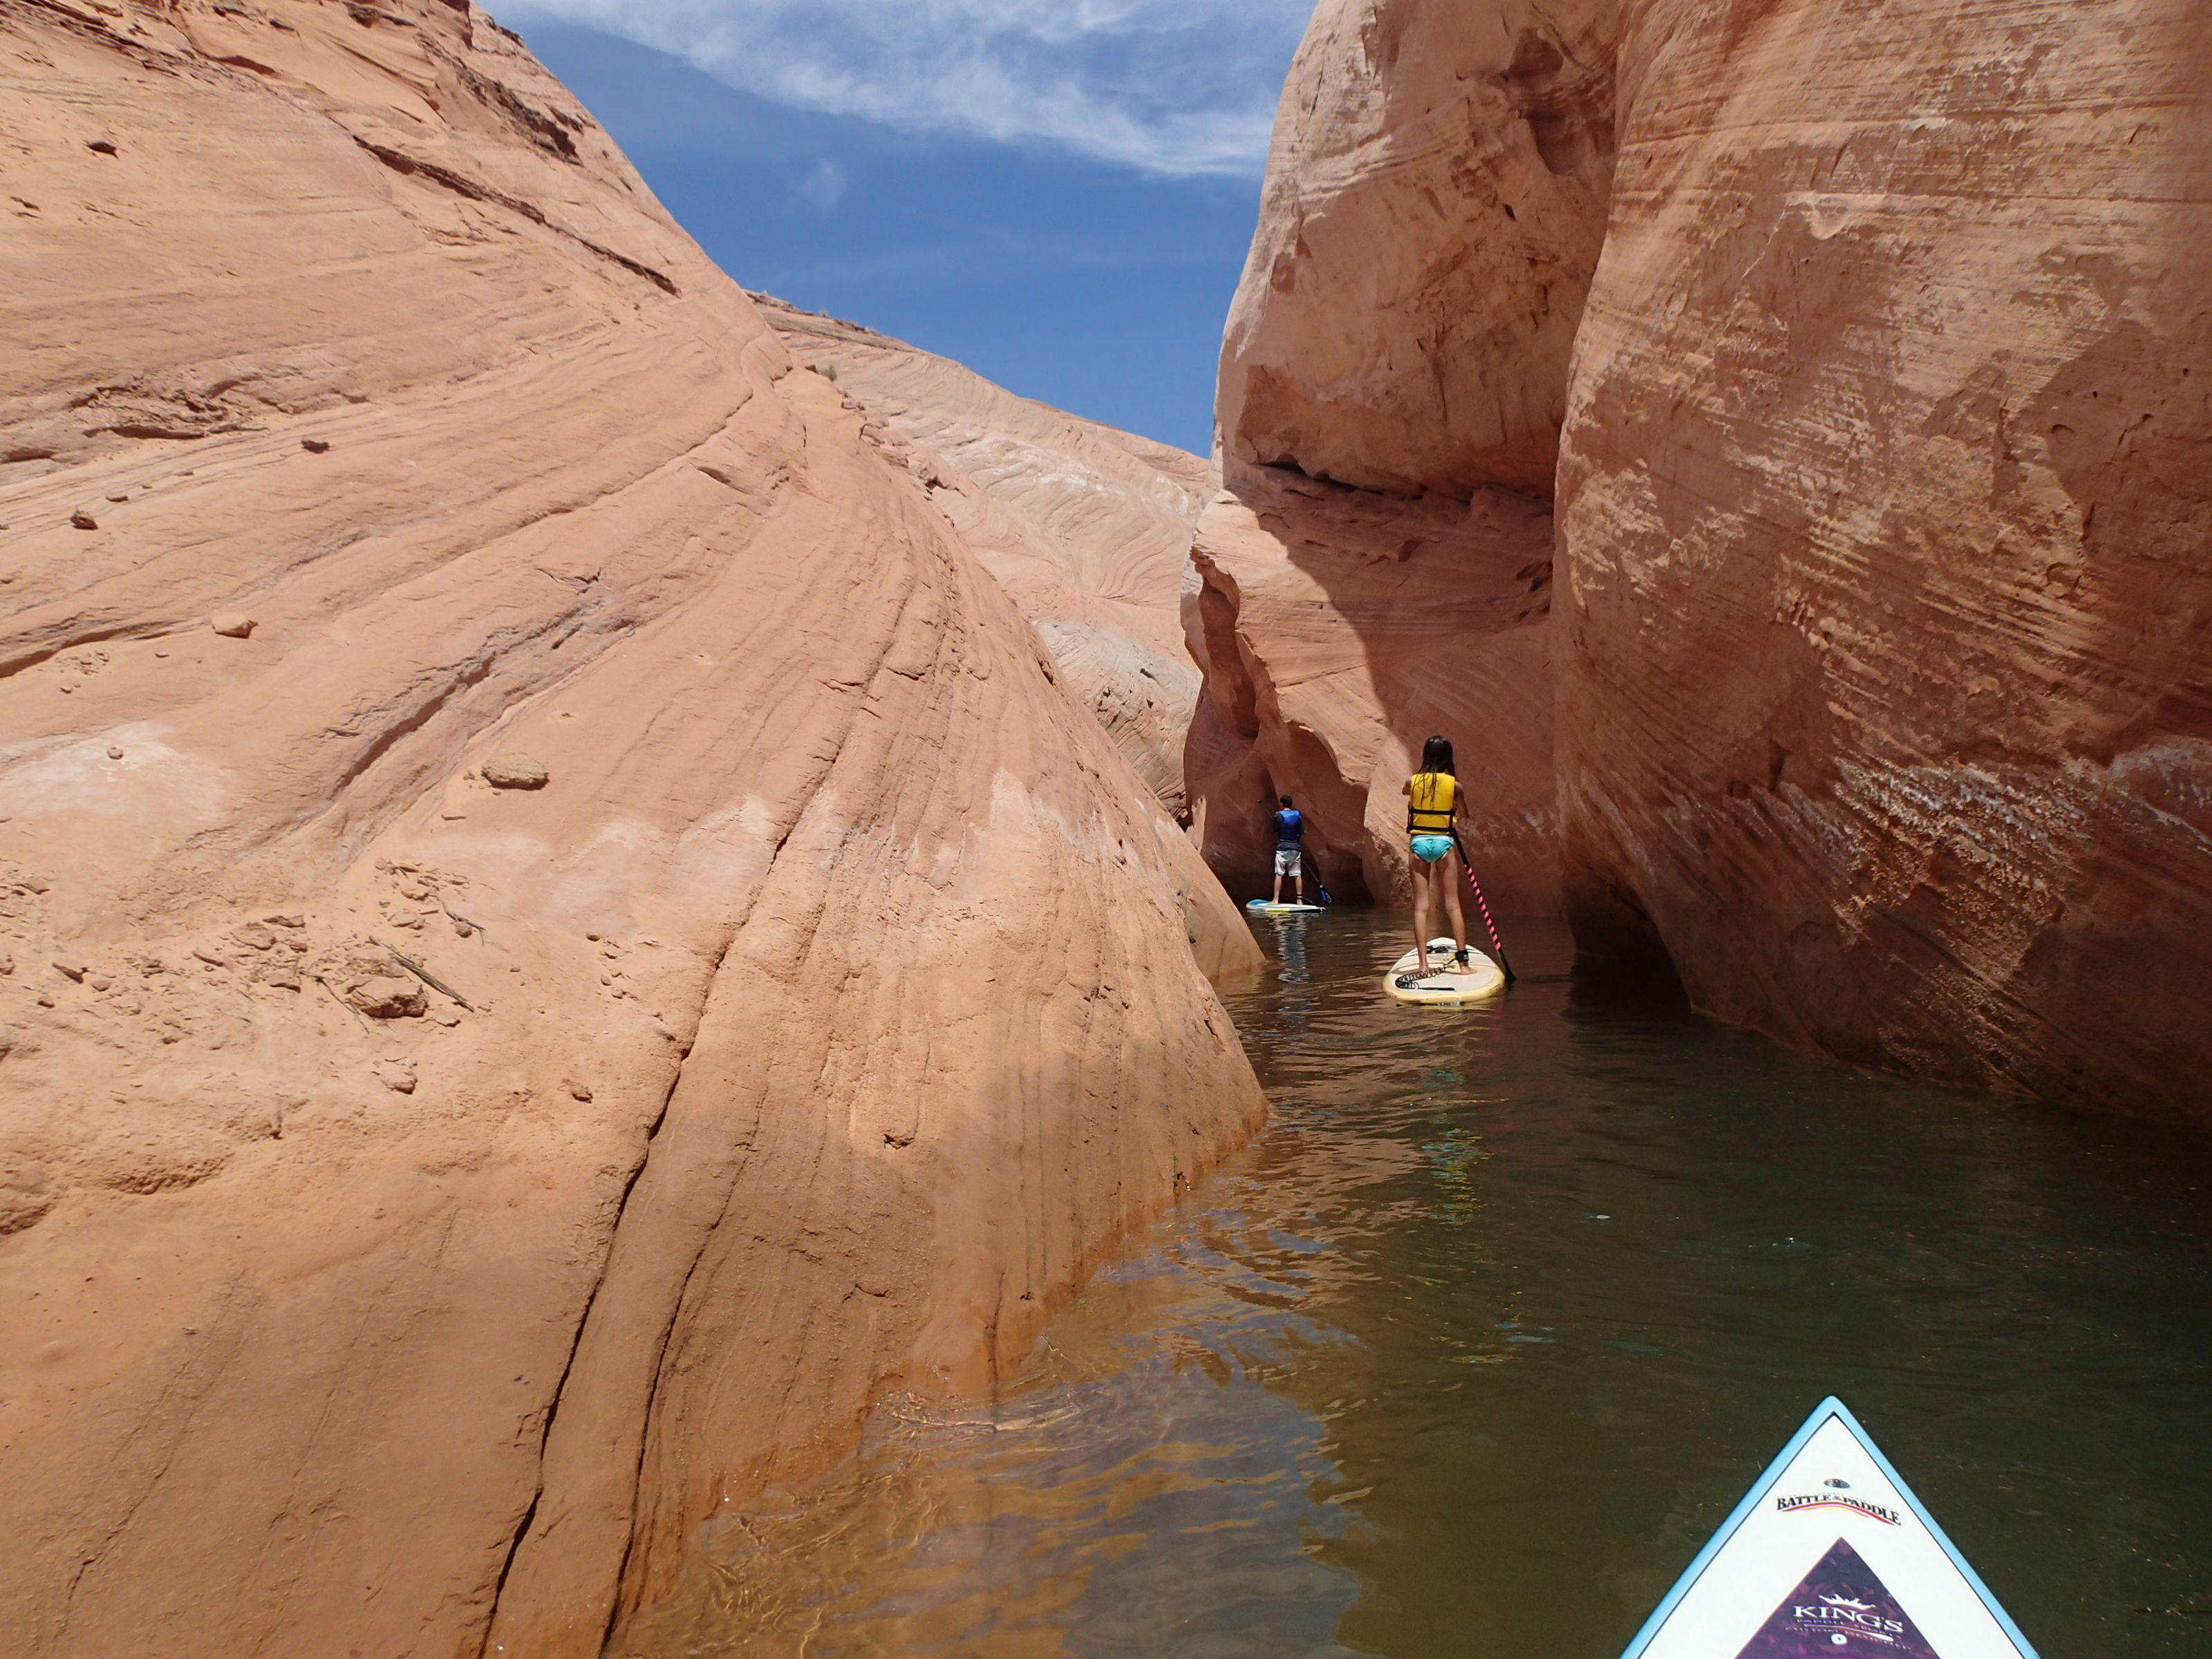 lake powell dating site Wahweap marina - map & directions  lake powell resorts & marinas, managed by aramark, is an authorized concessioner of the national park service,.